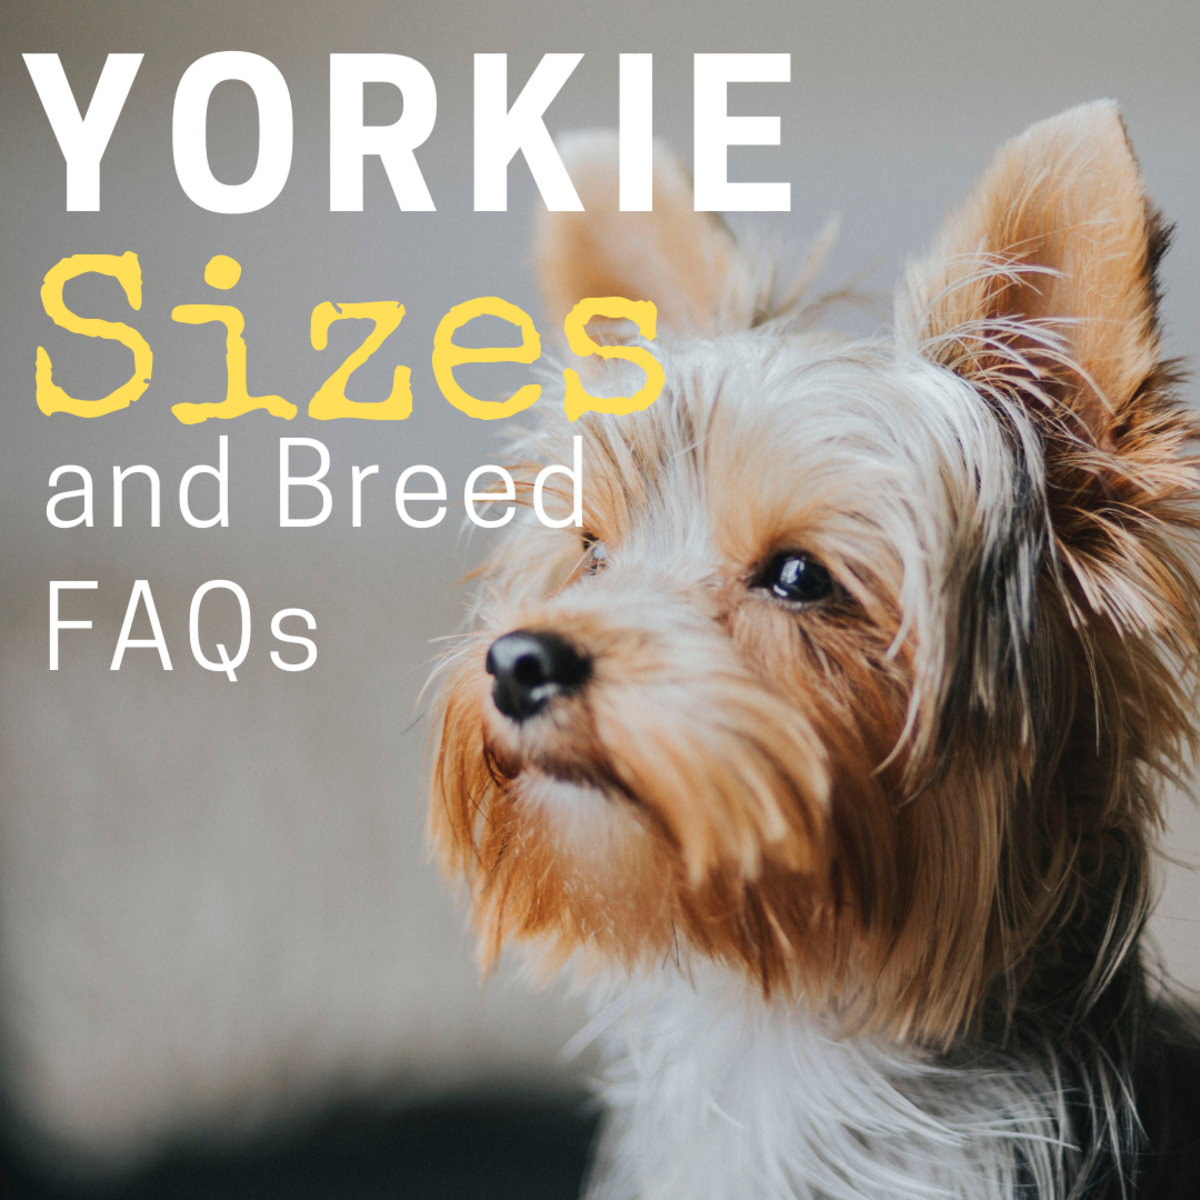 Yorkie Sizes—Giant, Standard, and Teacup